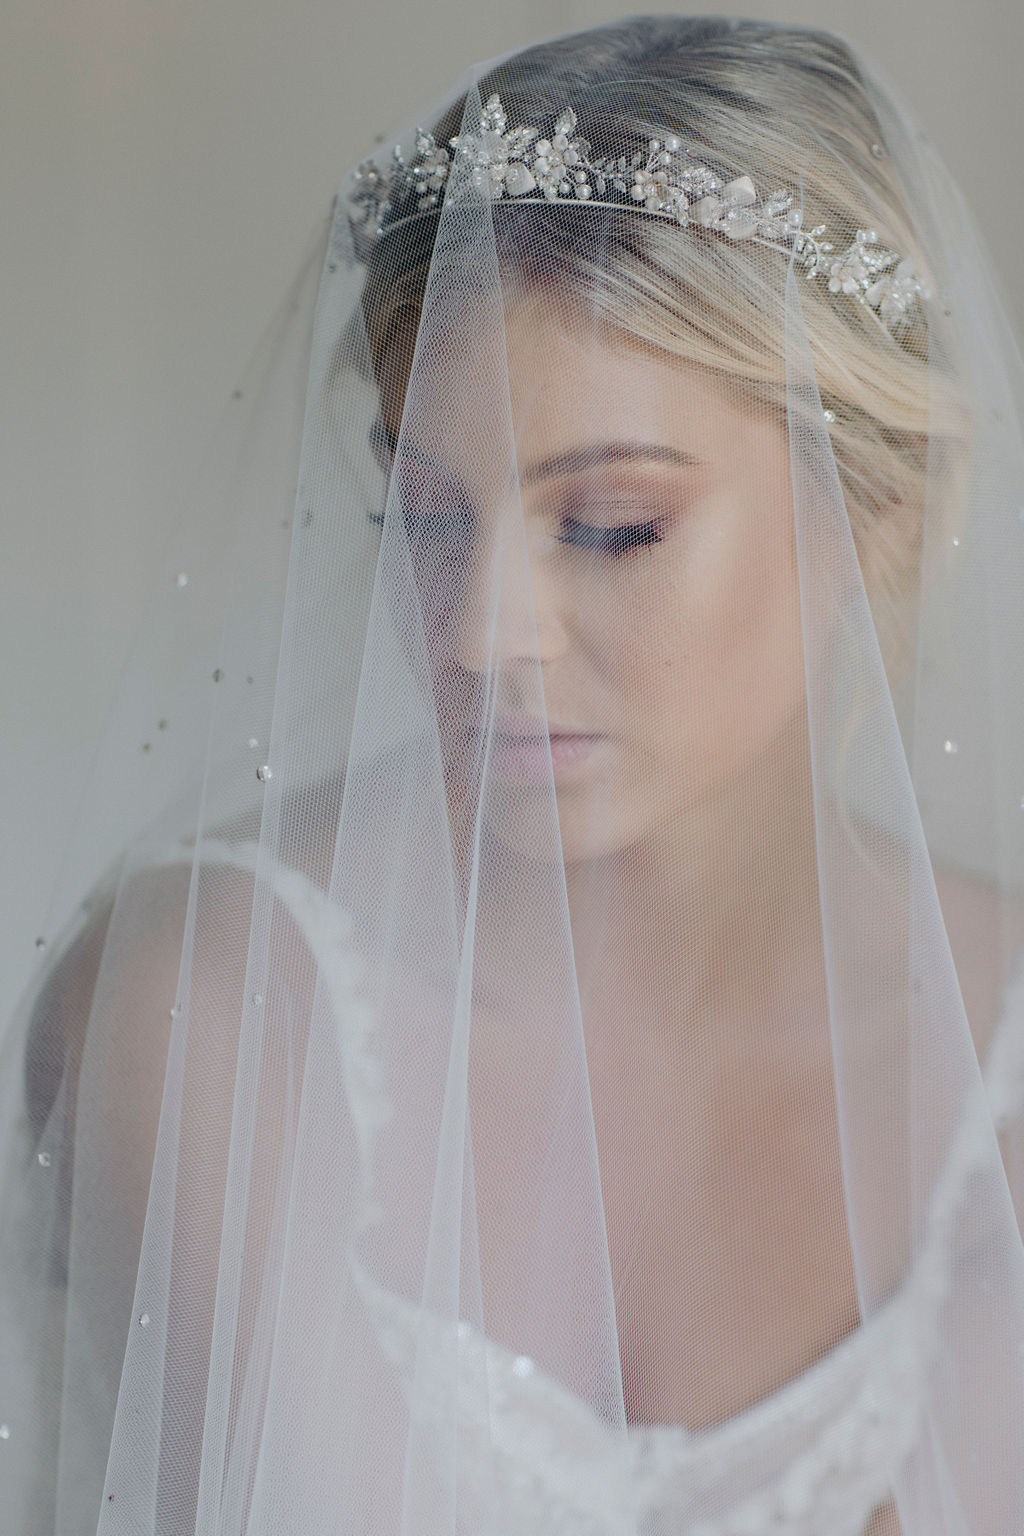 CASHMERE | CRYSTAL WEDDING TIARA & MORNING MIST VEIL by TANIA MARAS